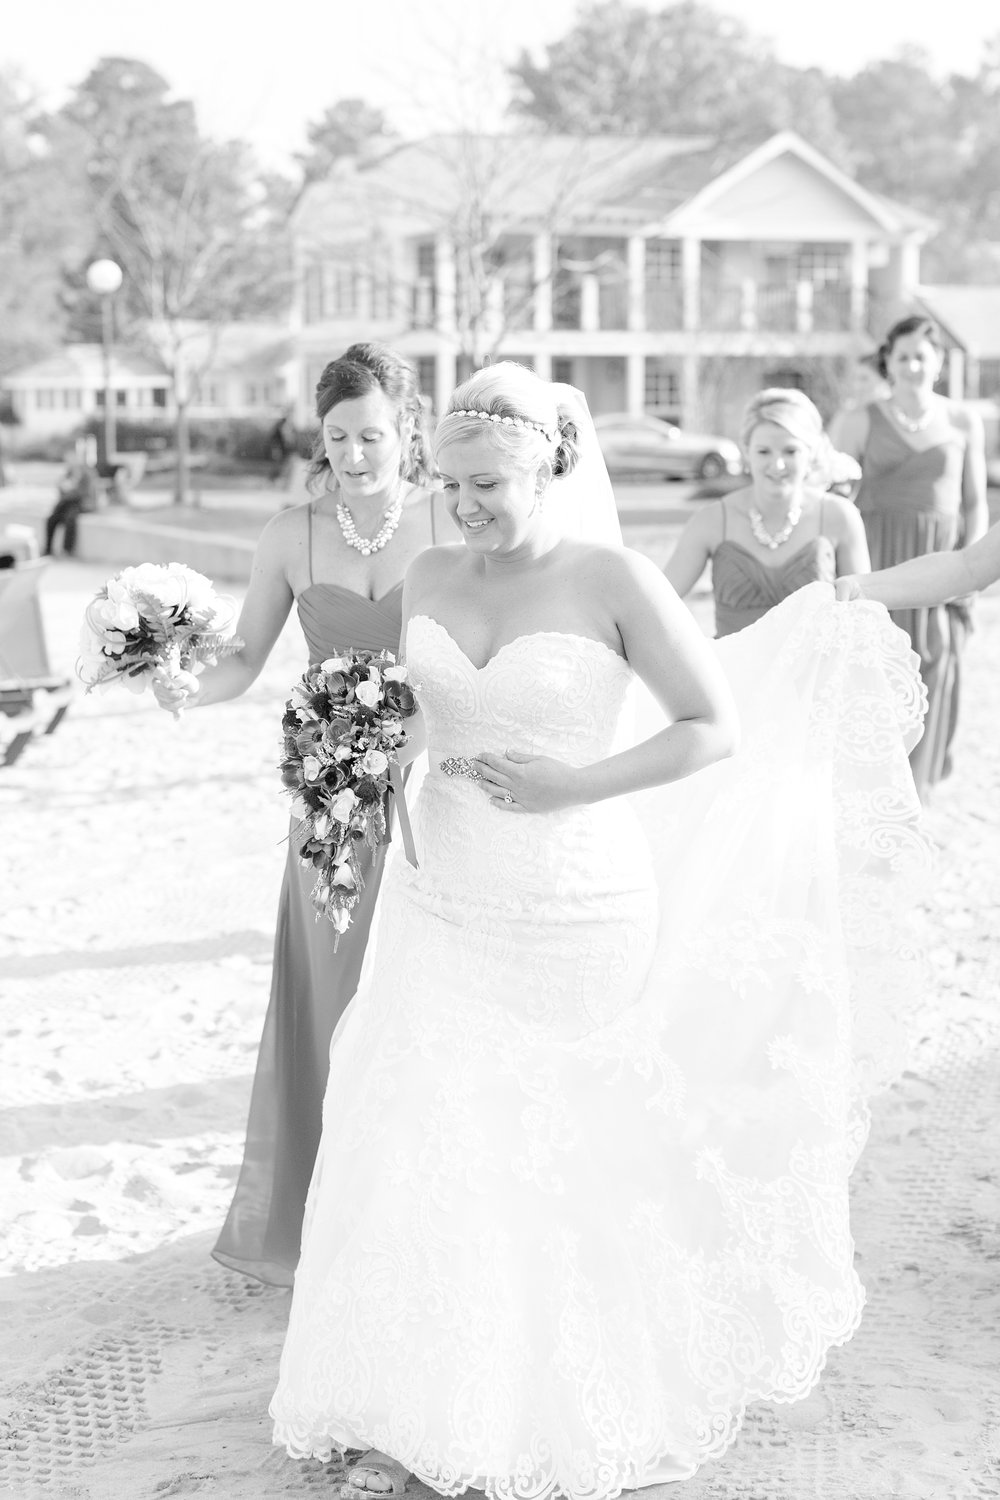 Mankiewicz 4. Bridal Party-439_anna grace photography annapolis maryland wedding photographer herrington on the bay wedding photo.jpg